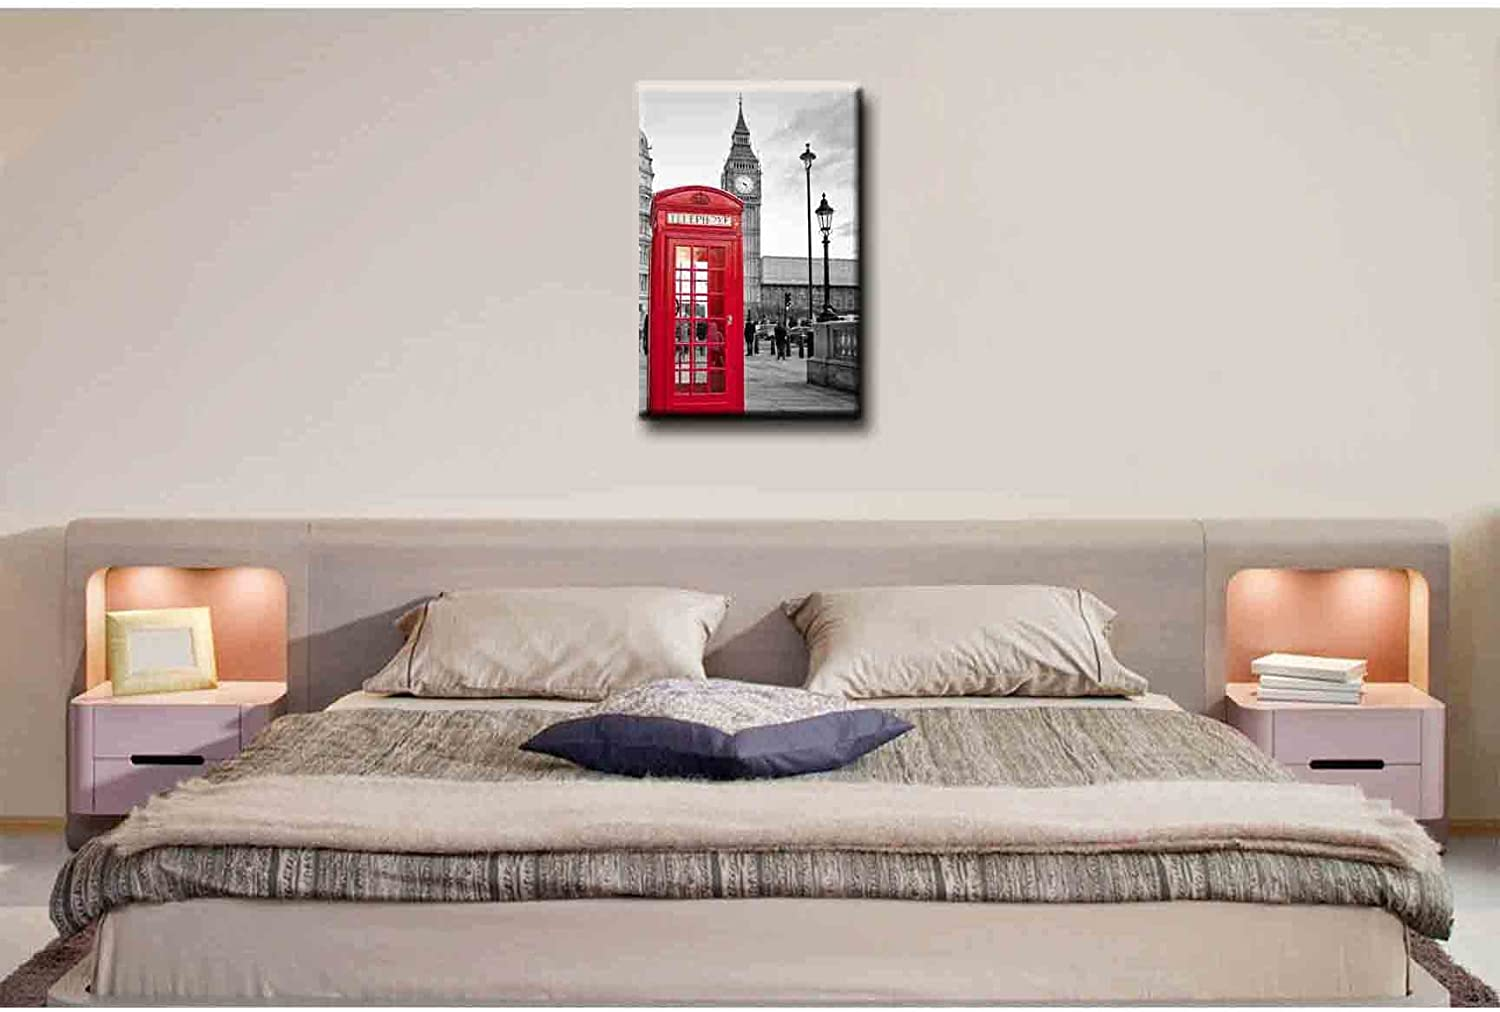 City Landscape Paintings Wall Art Decor a Traditional Red Phone Booth in London With the Big Ben in a Black and White Background Picture Print on Canvas for Modern Home Decoration SmartWallArt